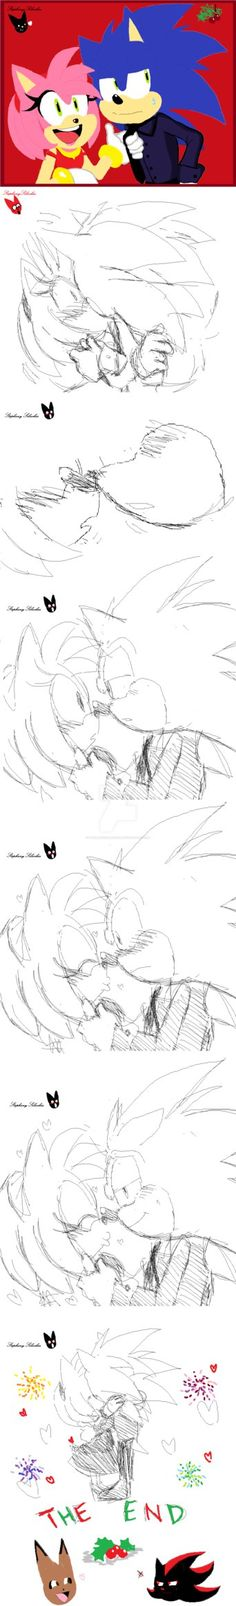 and here is the comic sonamy hope you like it ^^